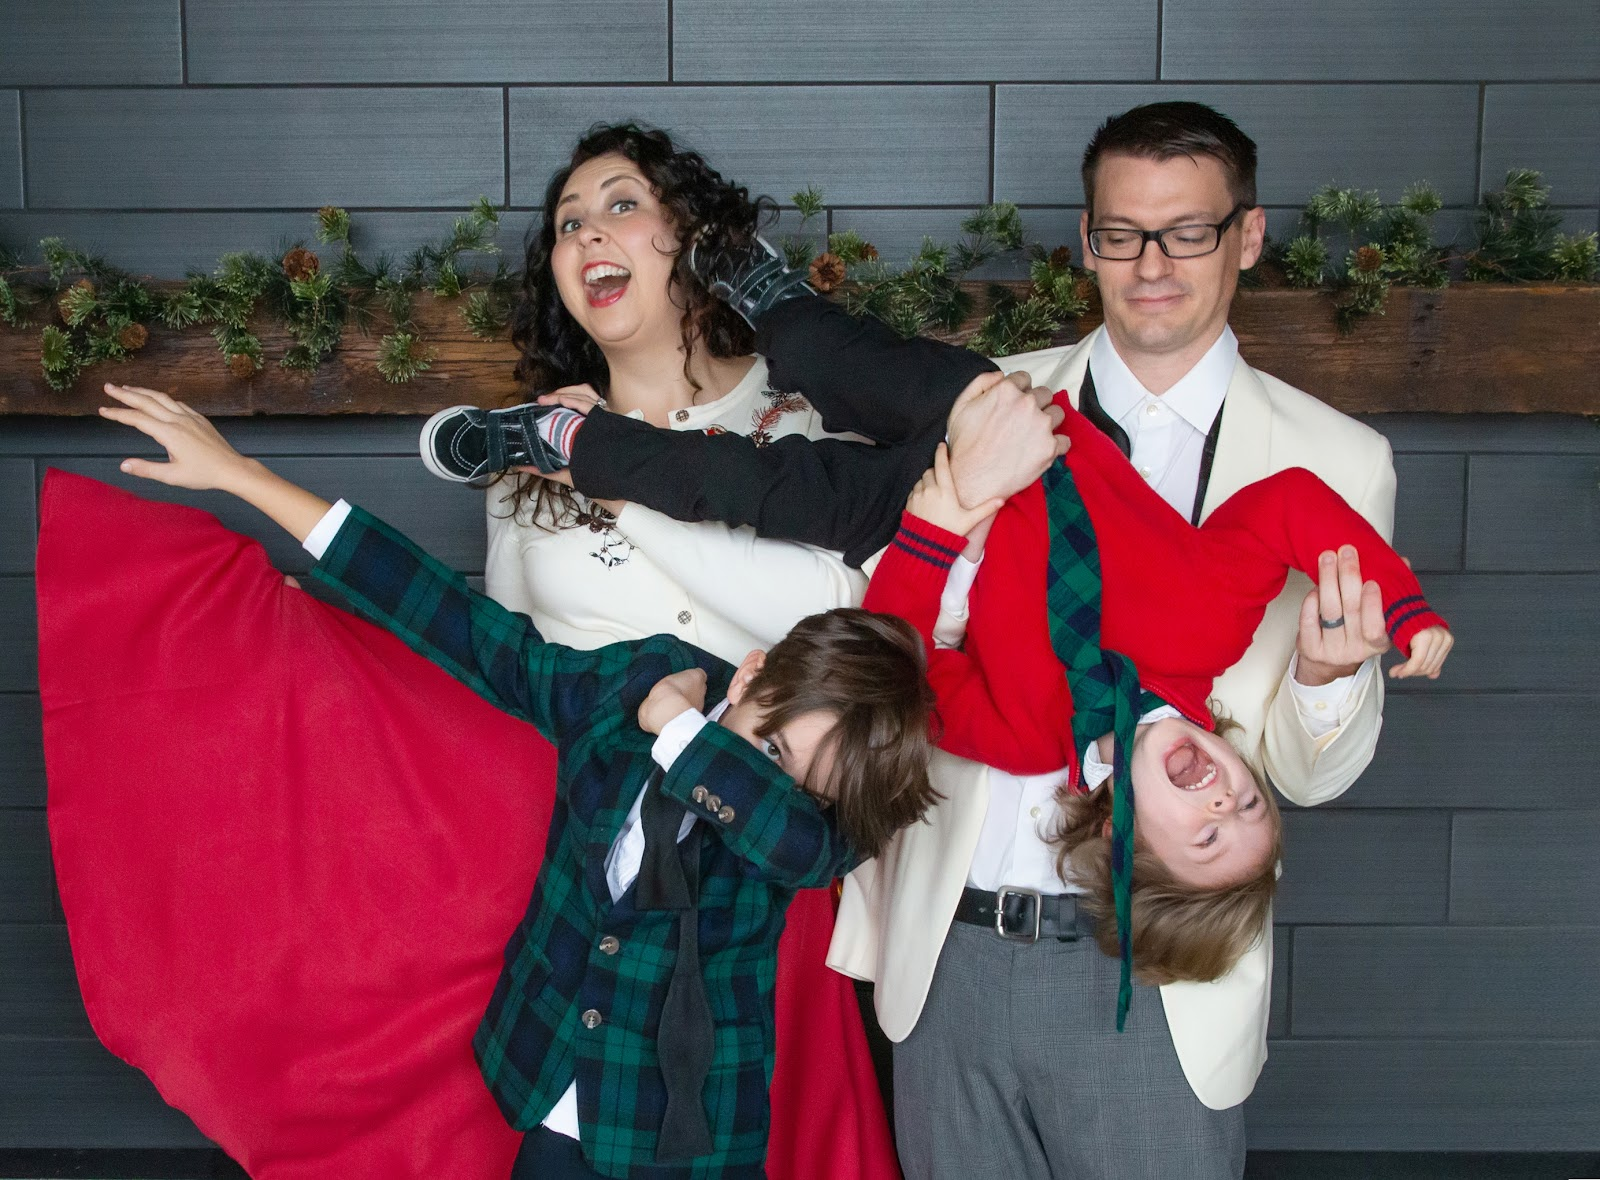 fun christmas card pose of family in formal christmas clothes for a holiday card